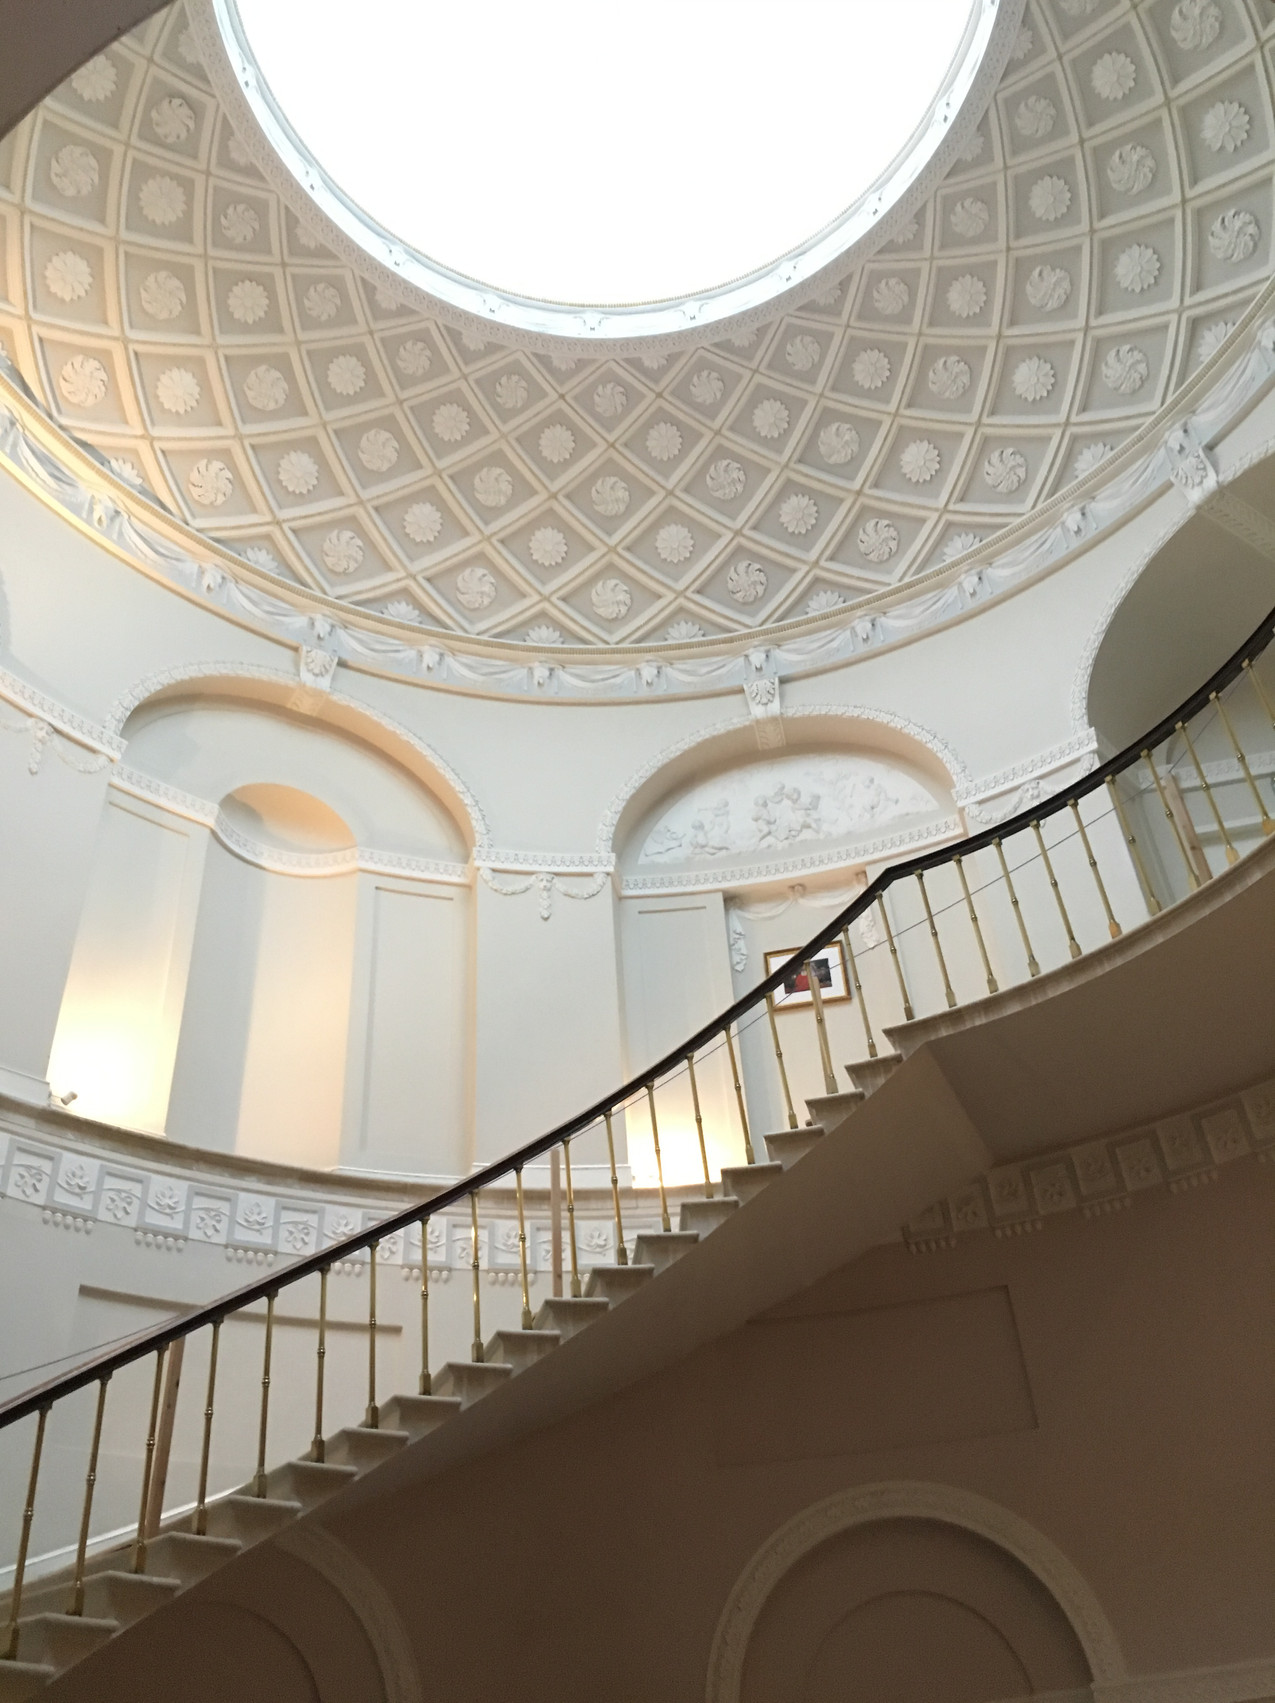 Townley Hall main stair